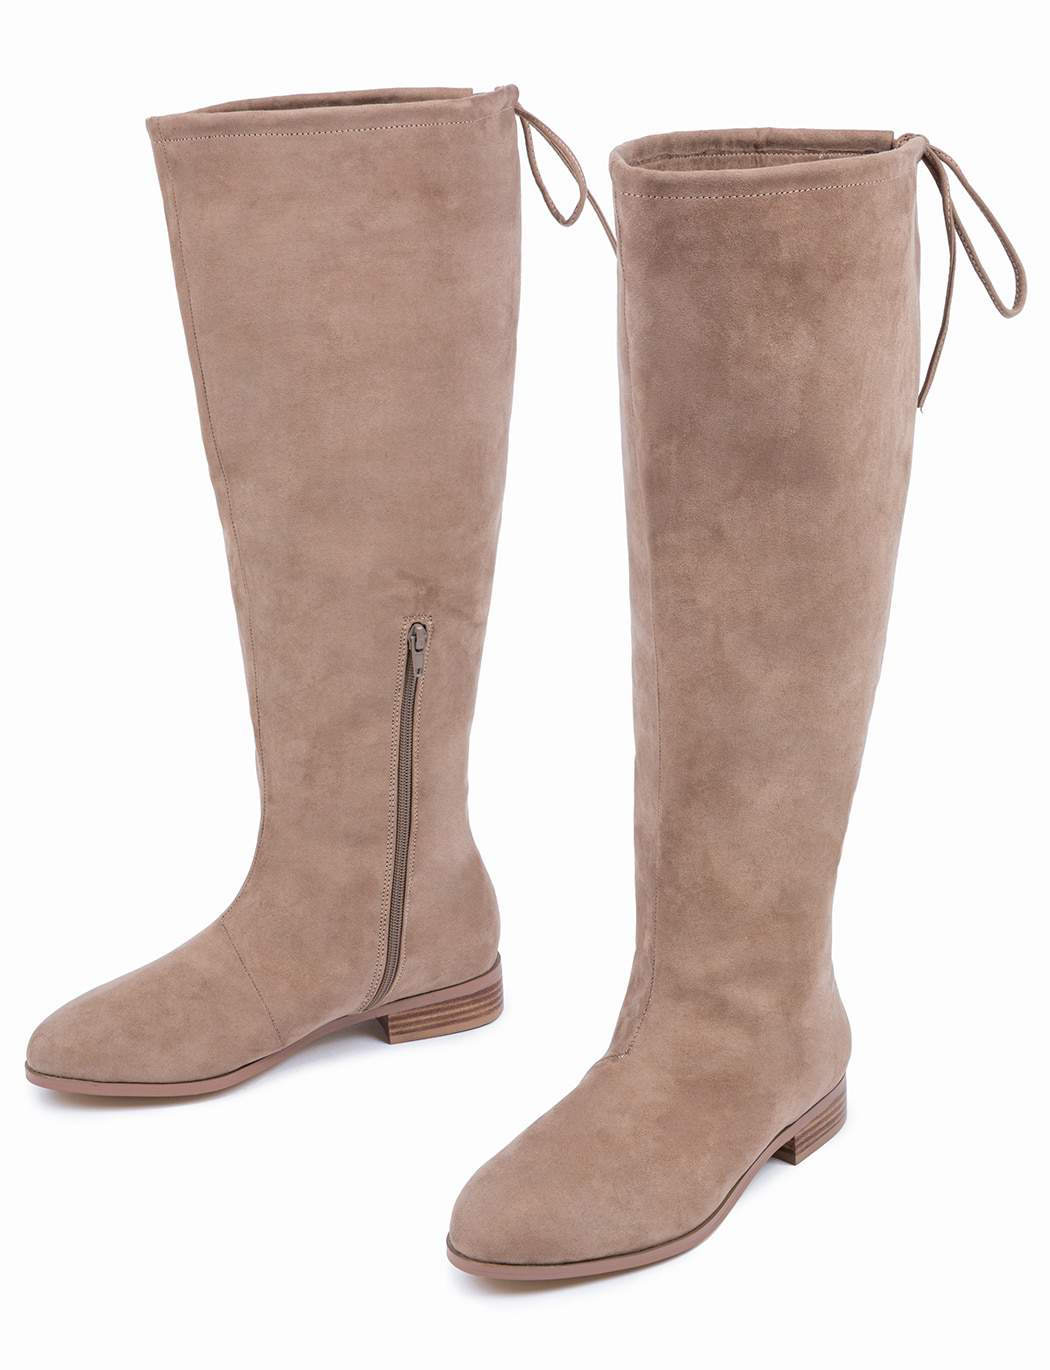 Wide Calf Knee High Flat Boot at Eloquii